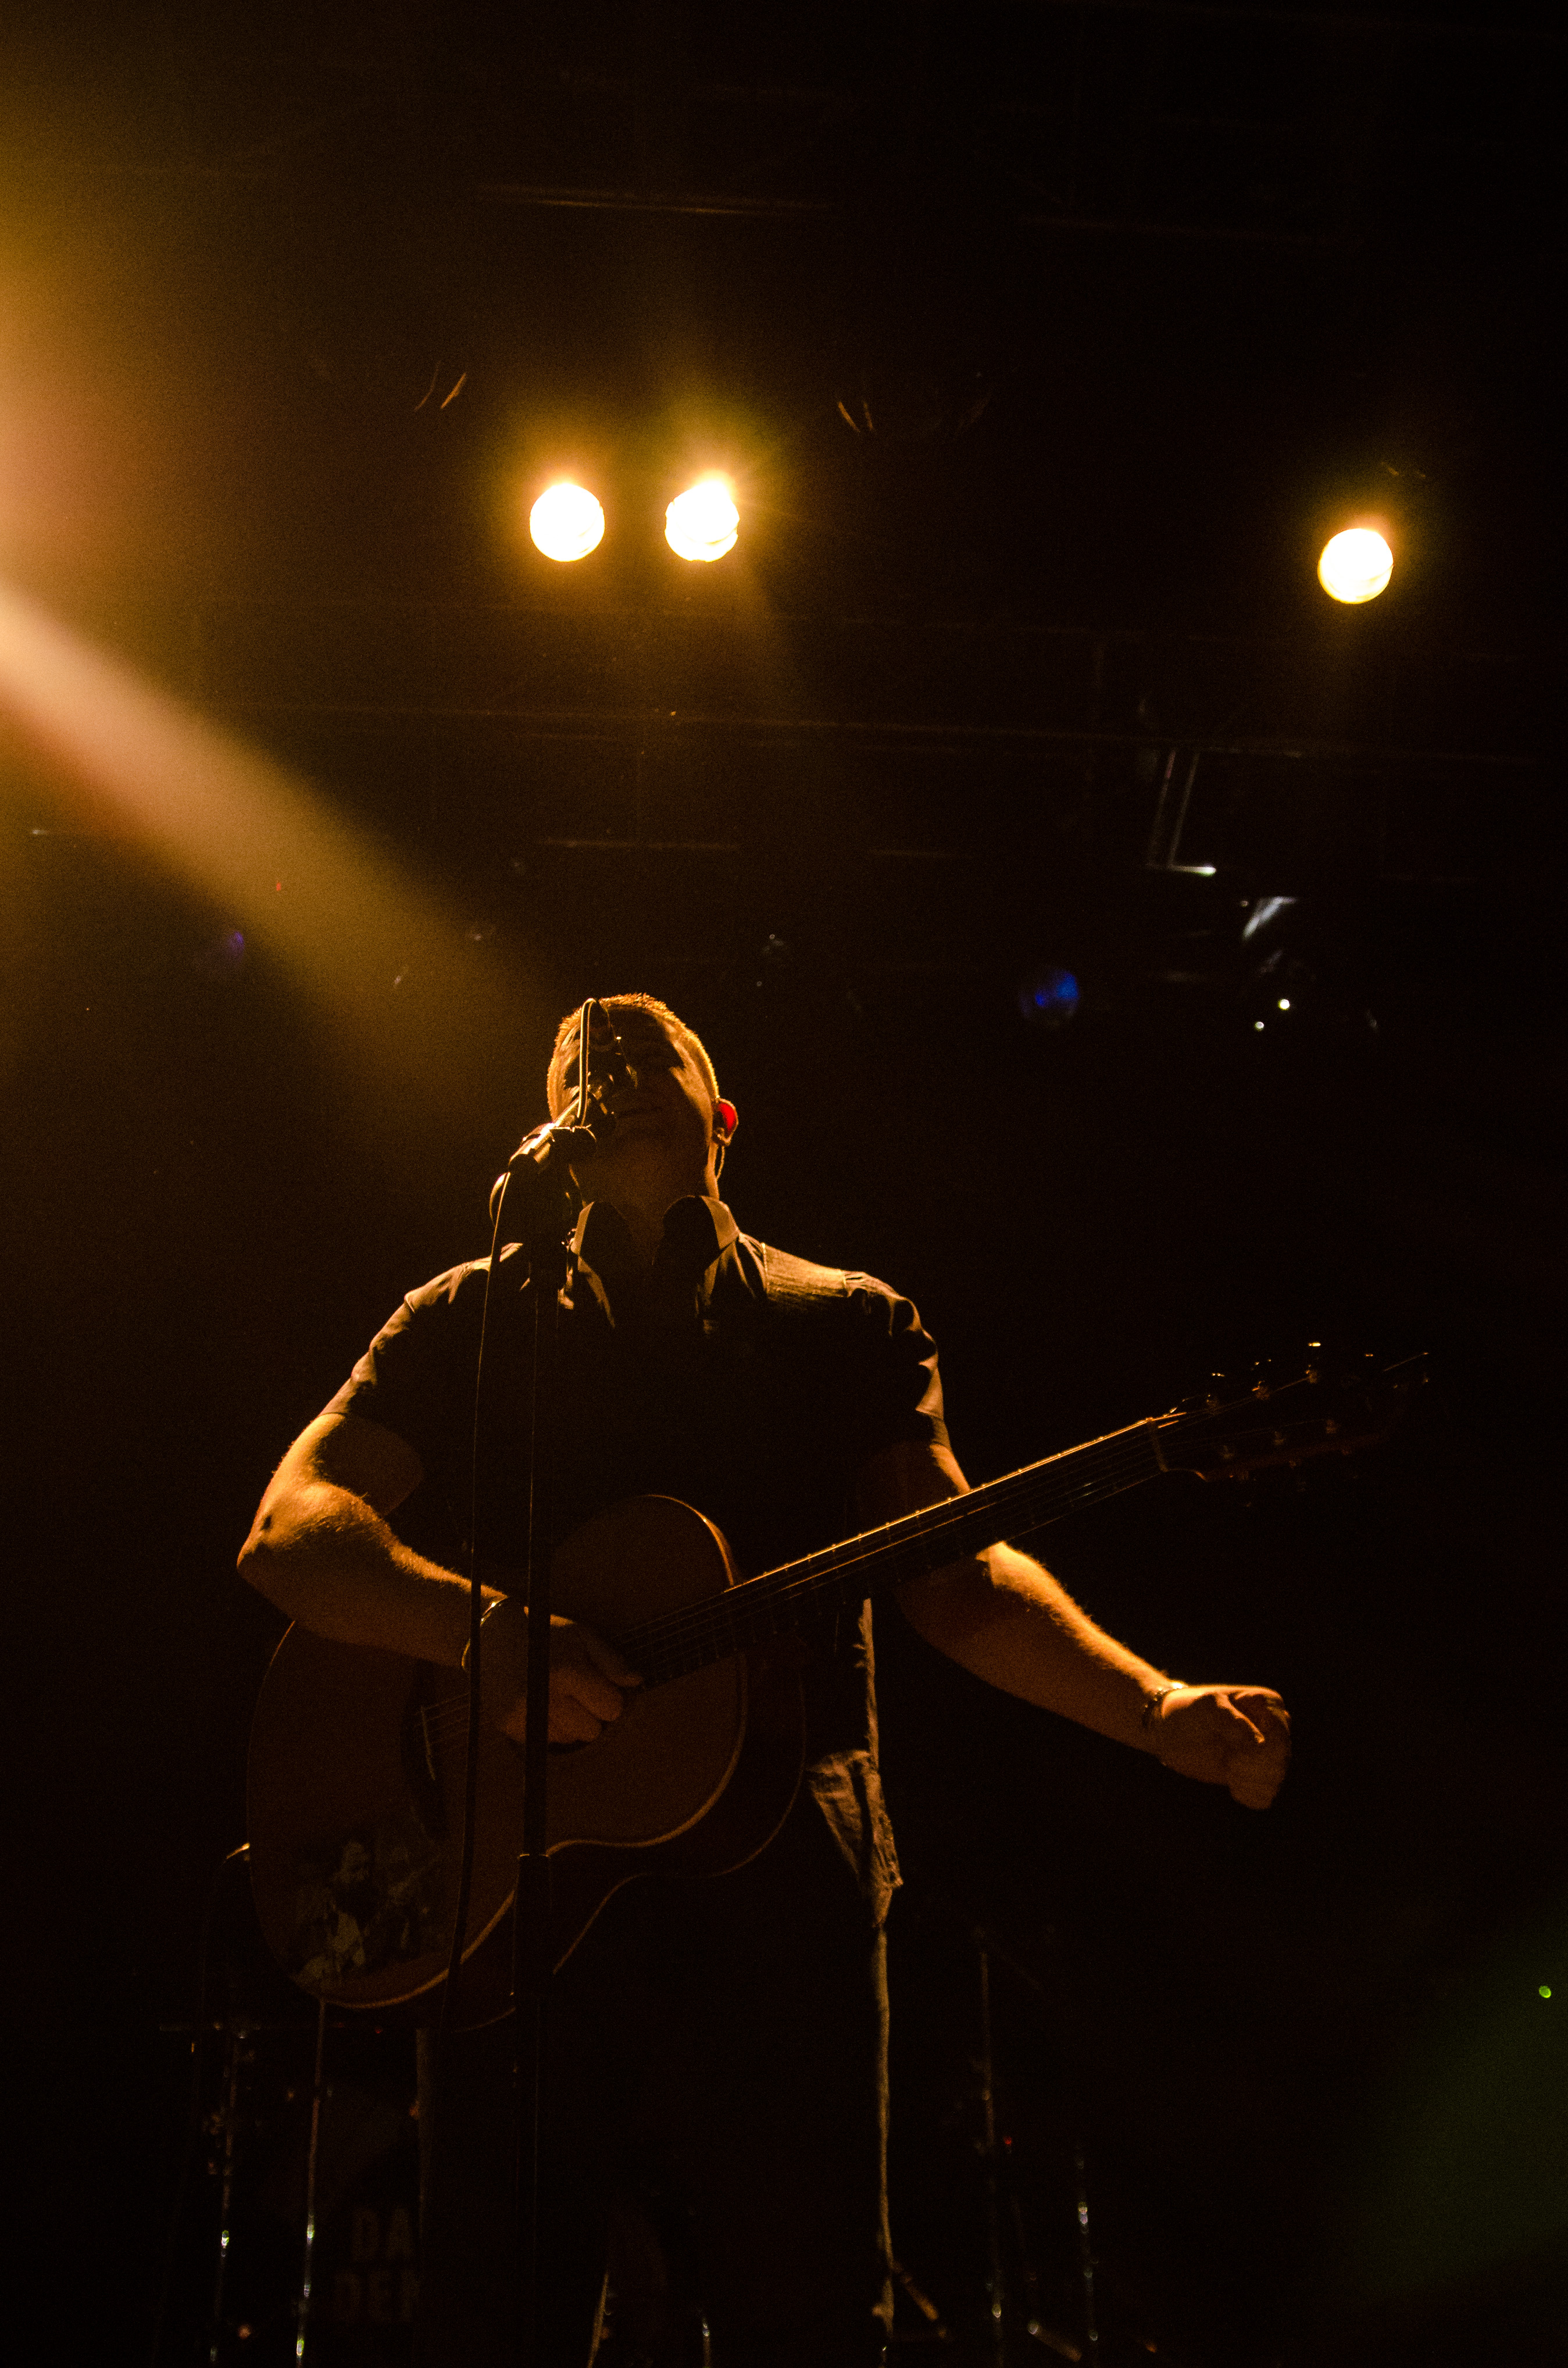 damien-dempsey-at-vicar-street-by-sean-smyth-9-12-15-1-of-34